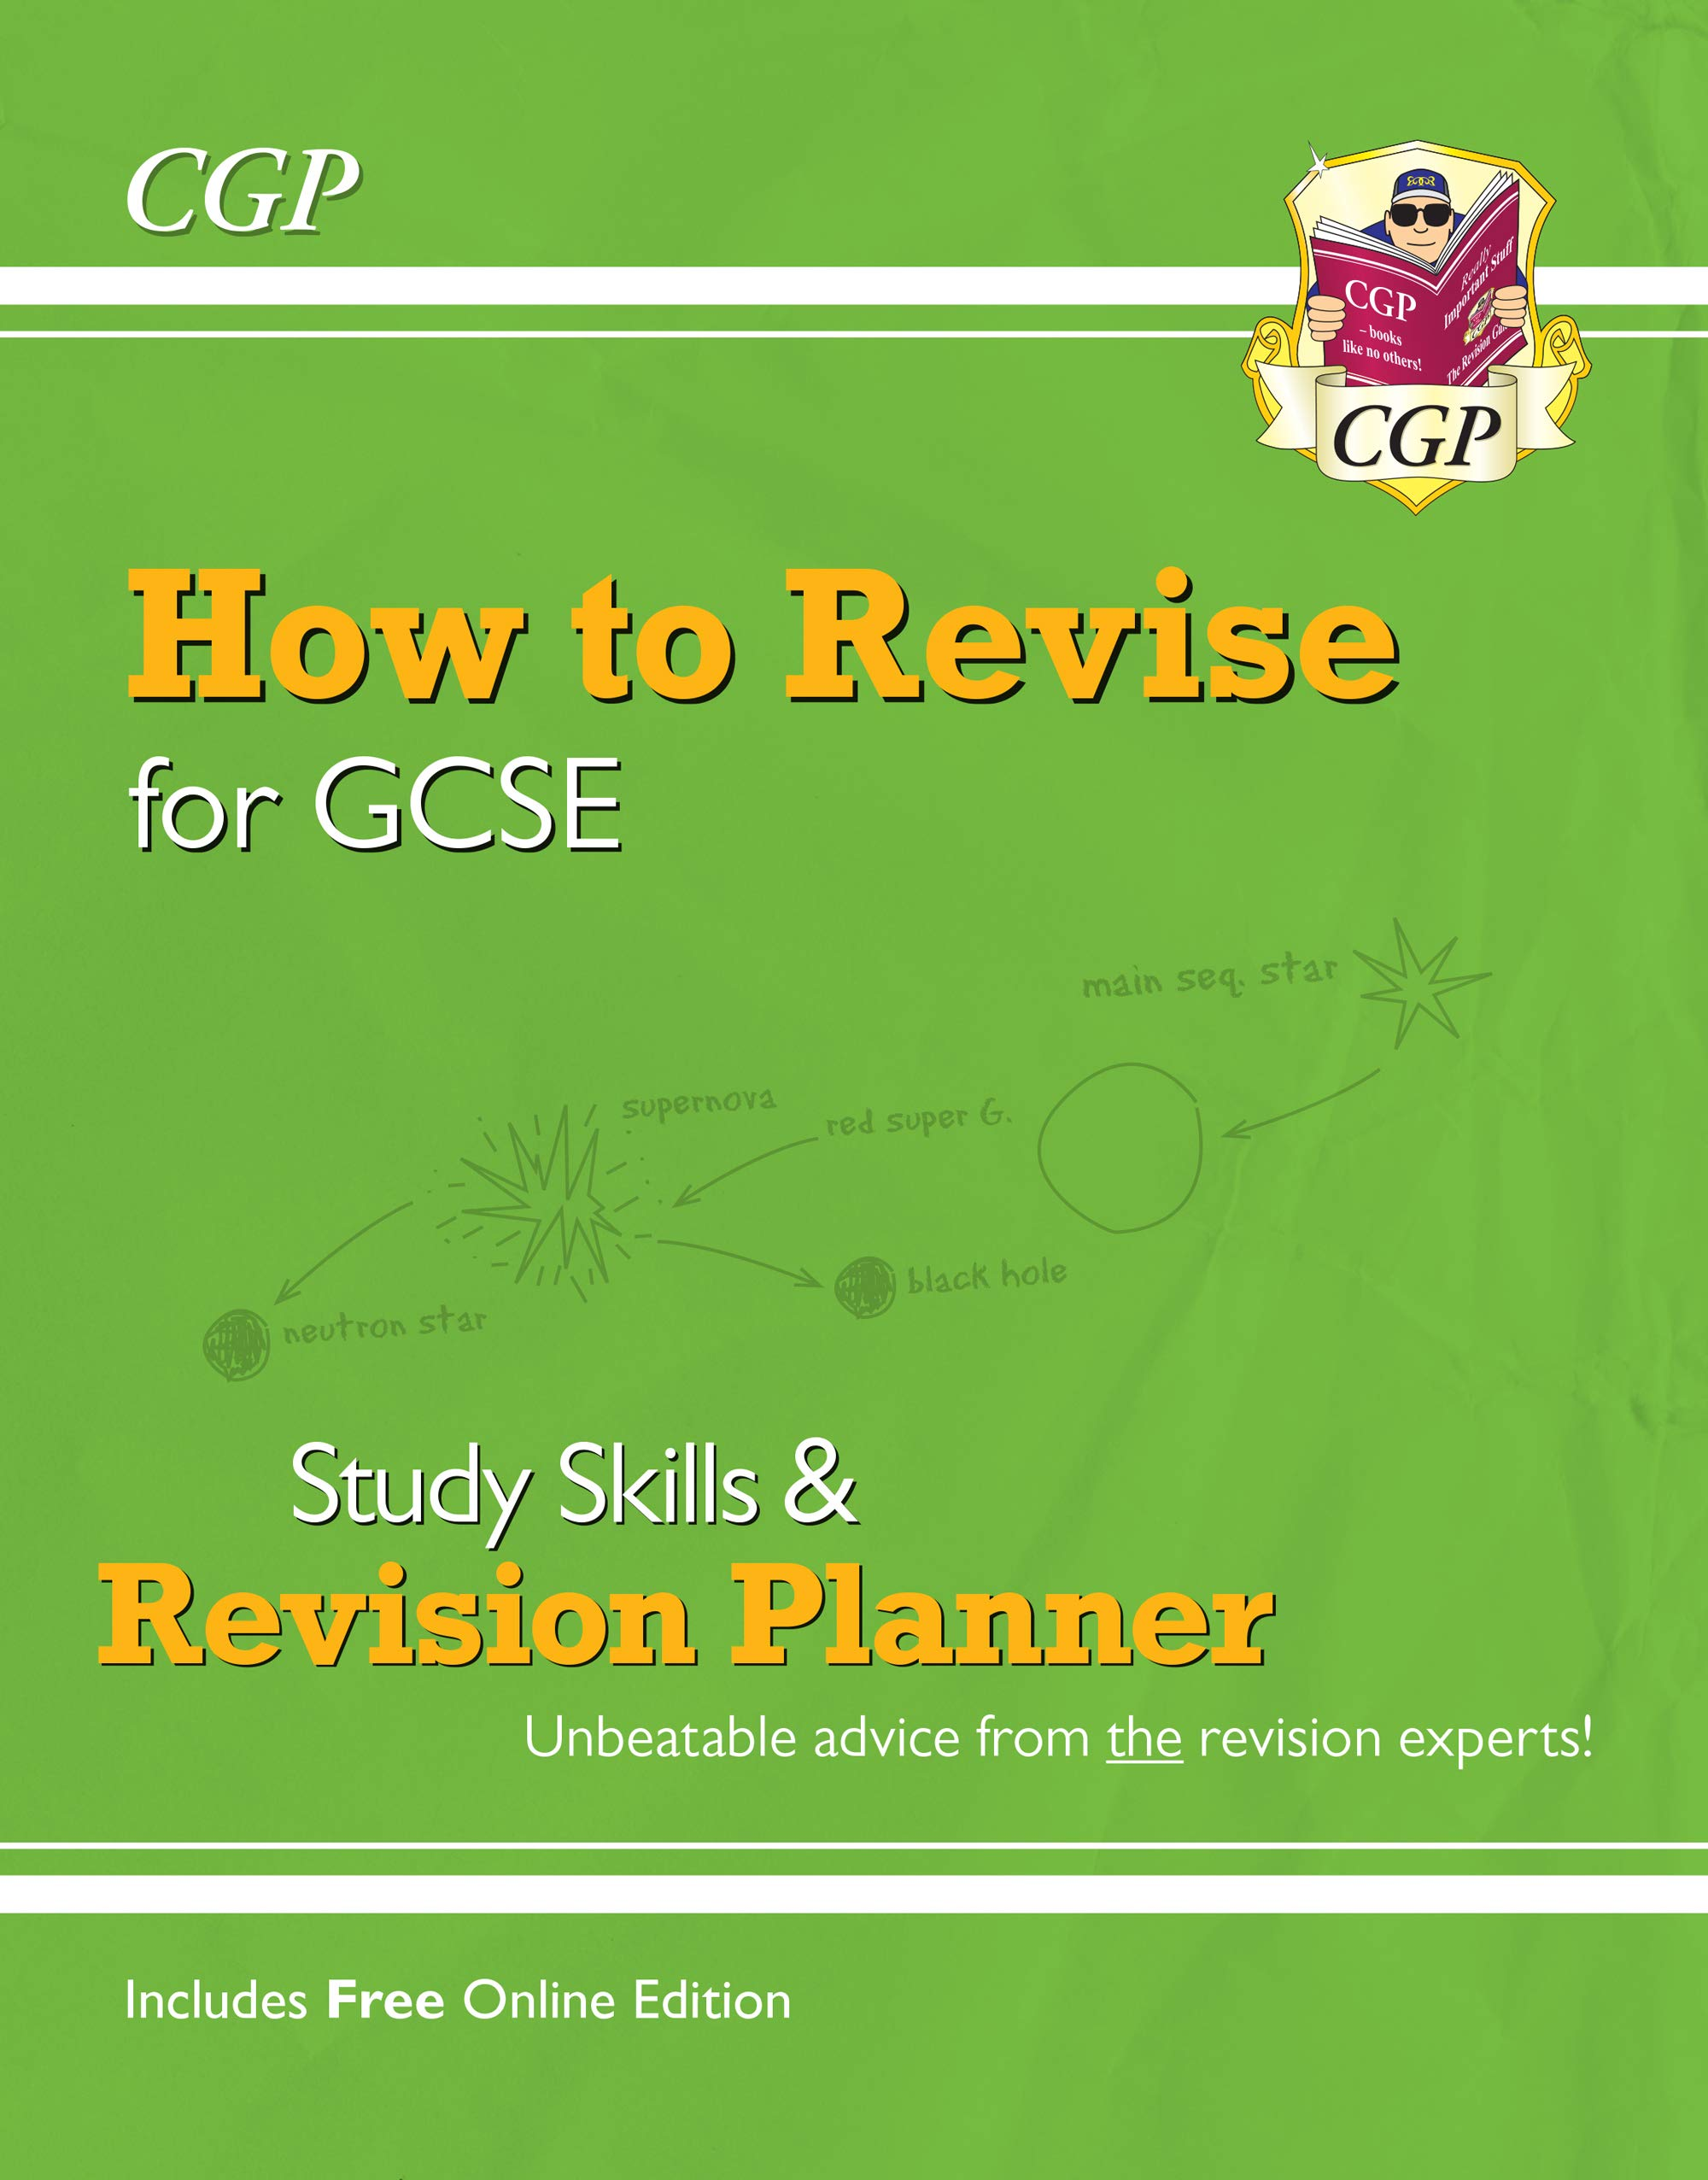 How to Revise for GCSE: Study Skills & Planner - from CGP